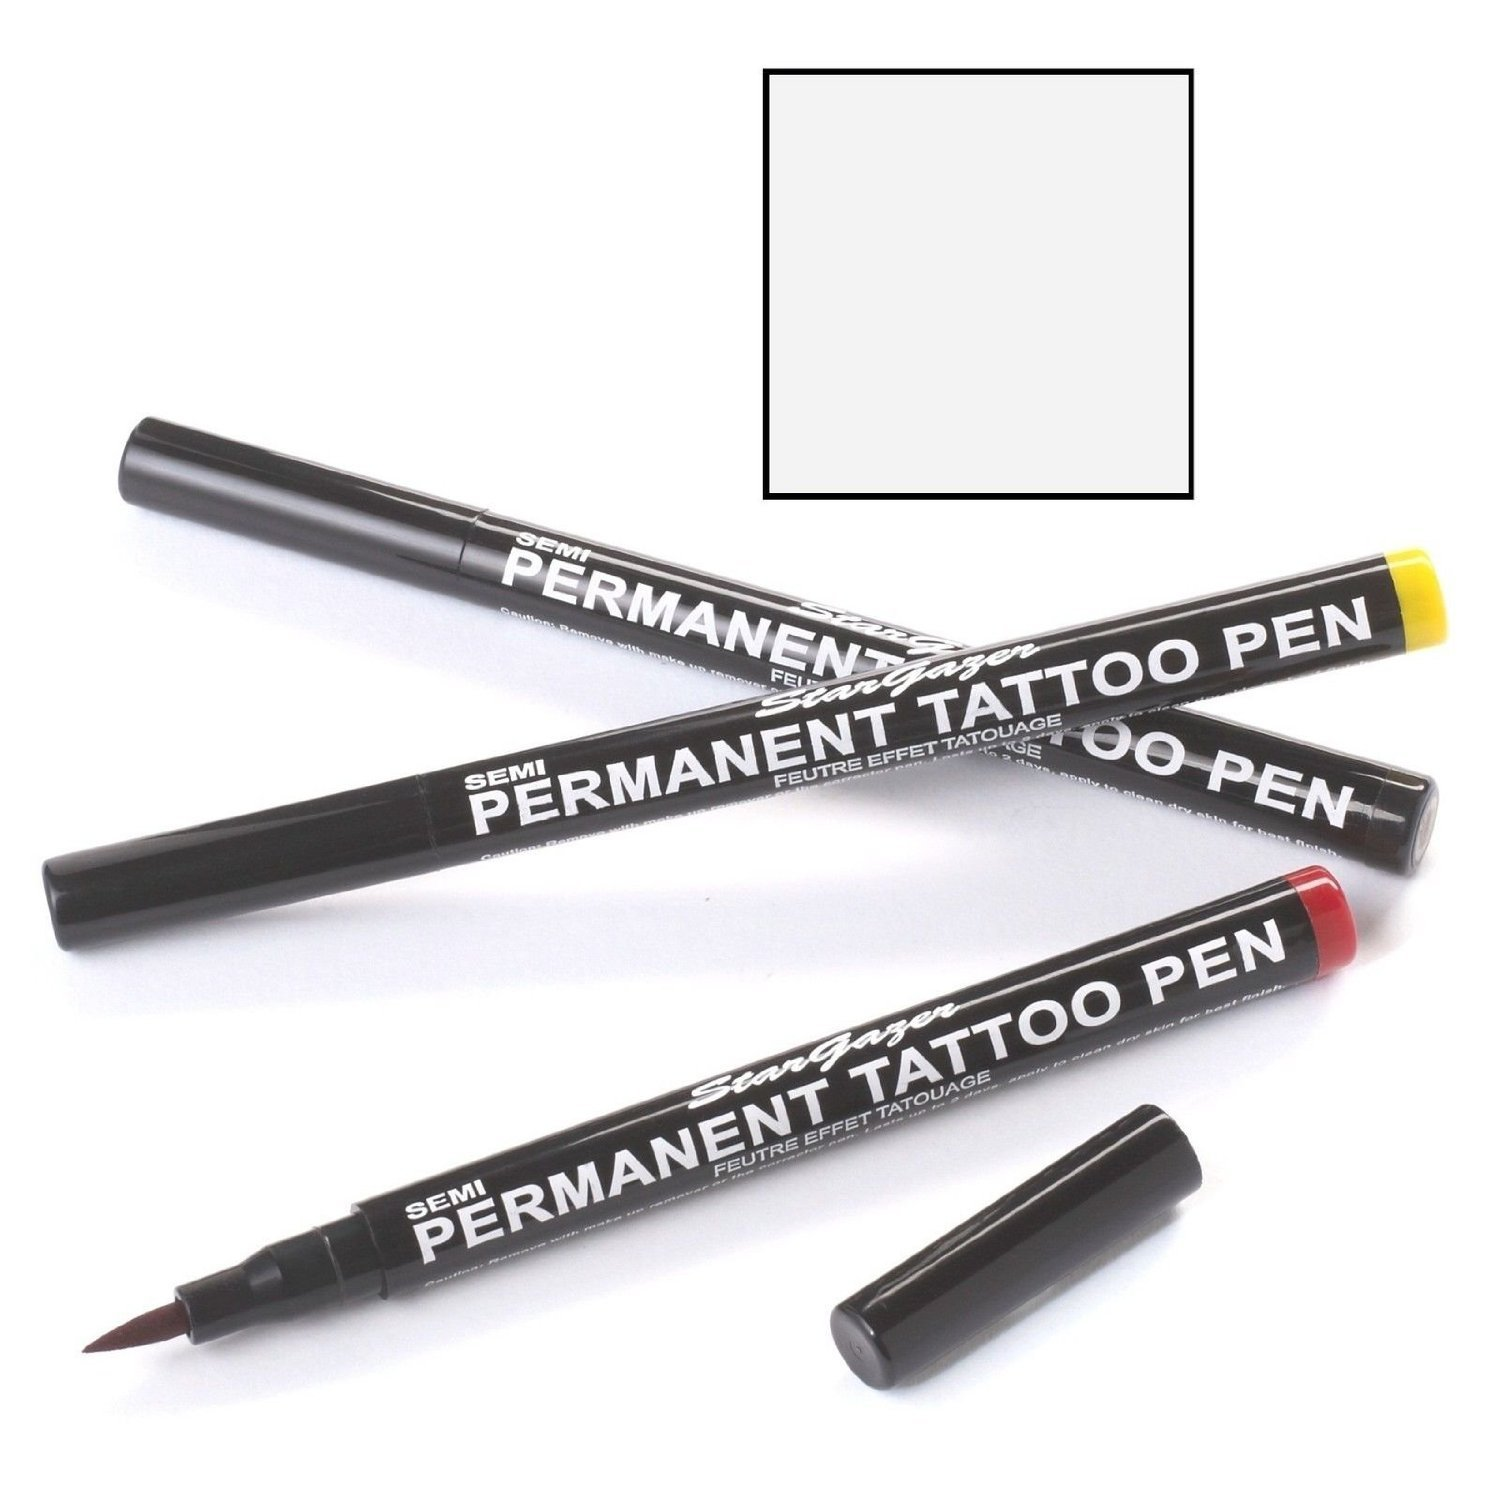 Stargazer Semi-Permanent Tattoo Pen #13 White by N MARKET